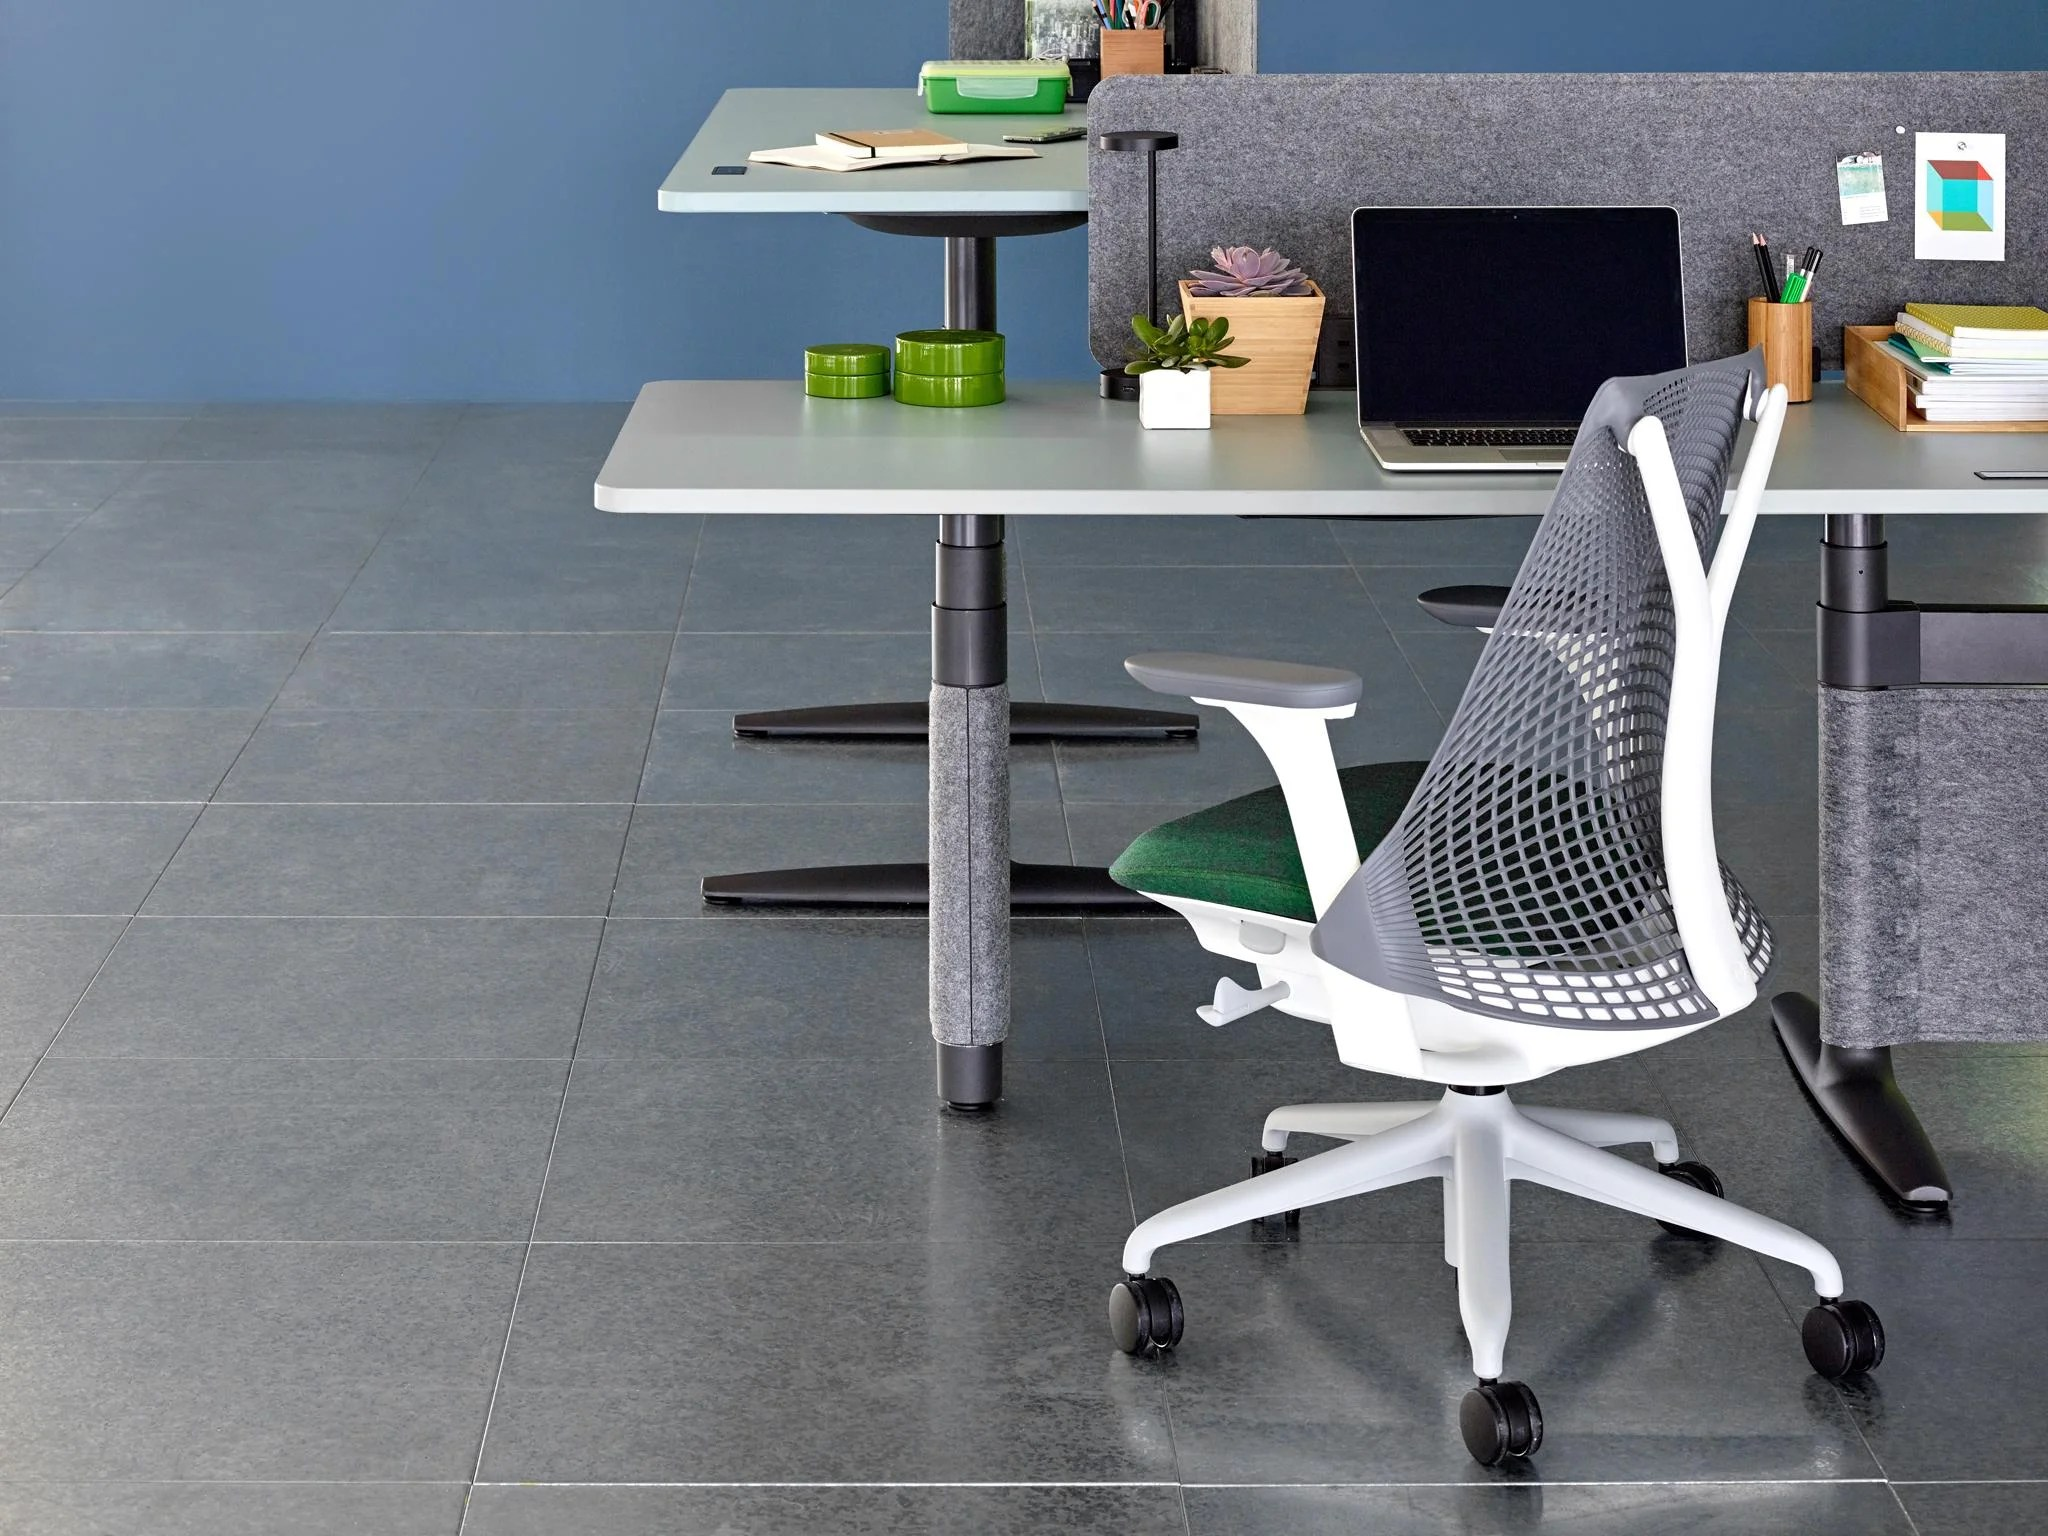 Best Office Chair Design 9 Best Ergonomic Office Chairs The Independent